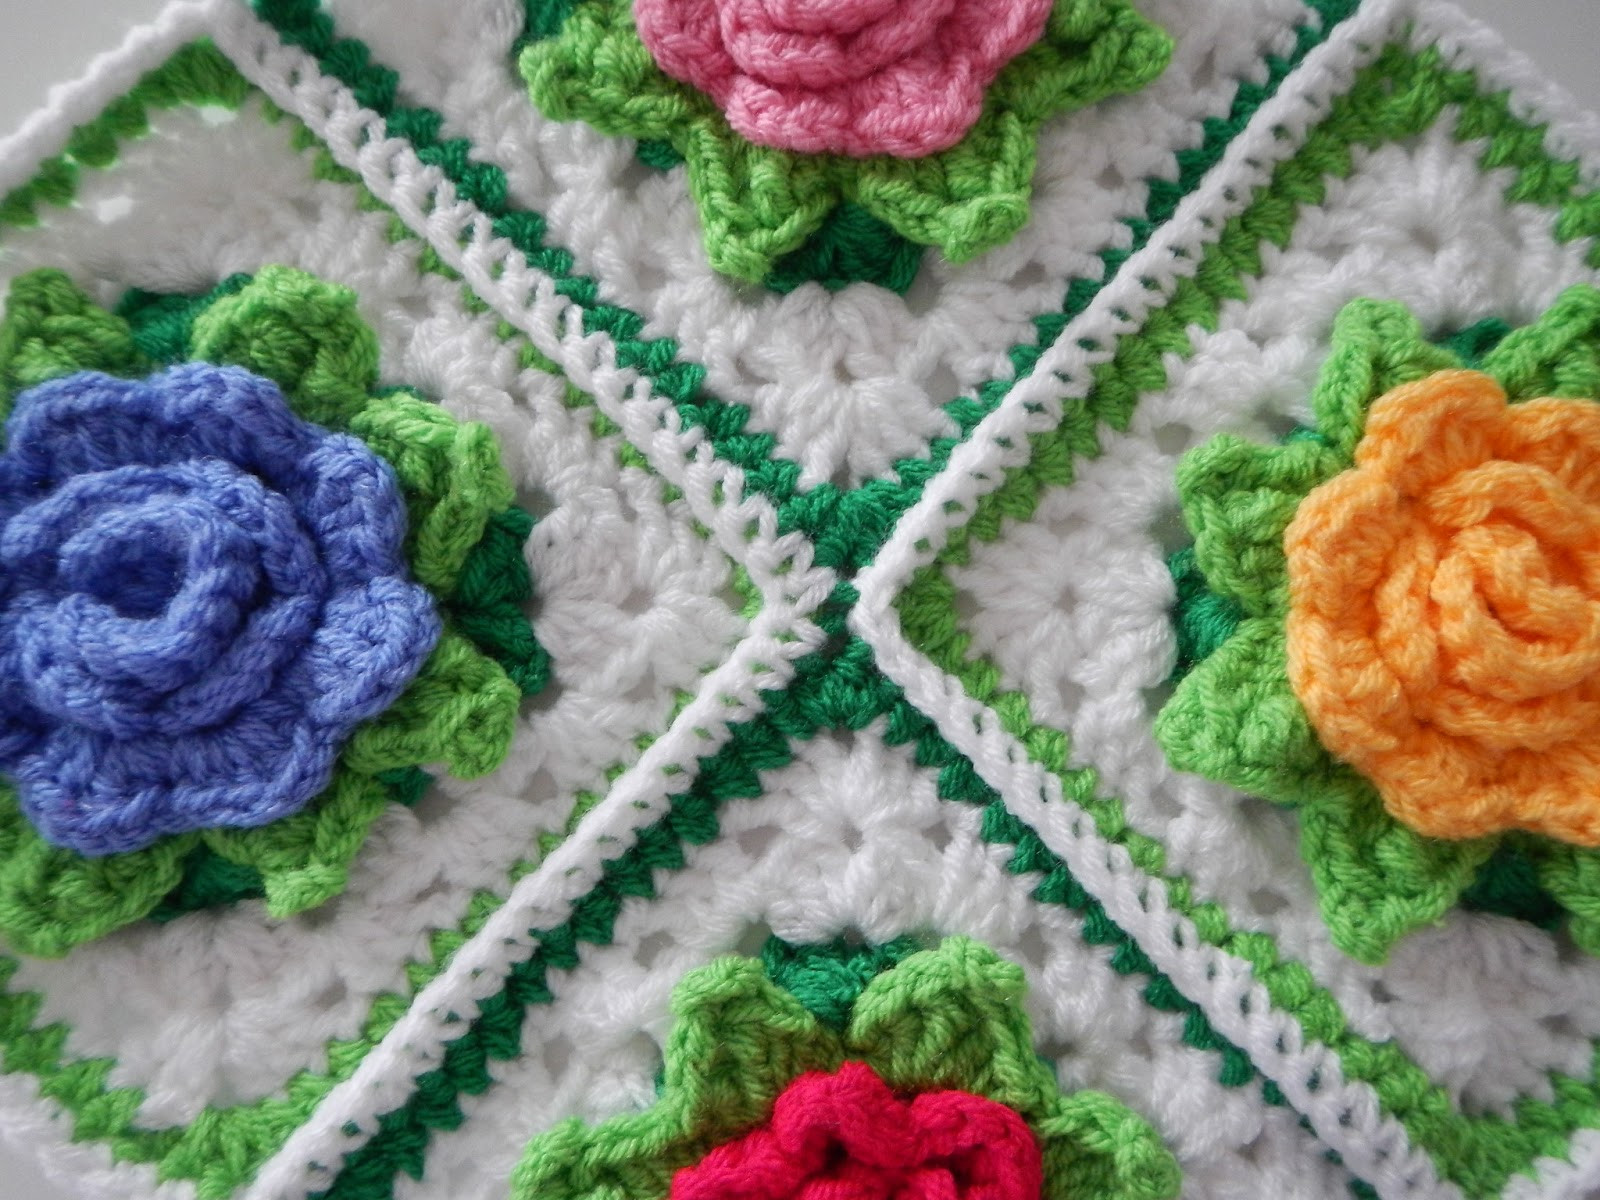 Crochet Granny Square Blanket Pattern Fresh Many Roses Afghan to Crochet Free Patterns and Ideas Of Brilliant 48 Ideas Crochet Granny Square Blanket Pattern